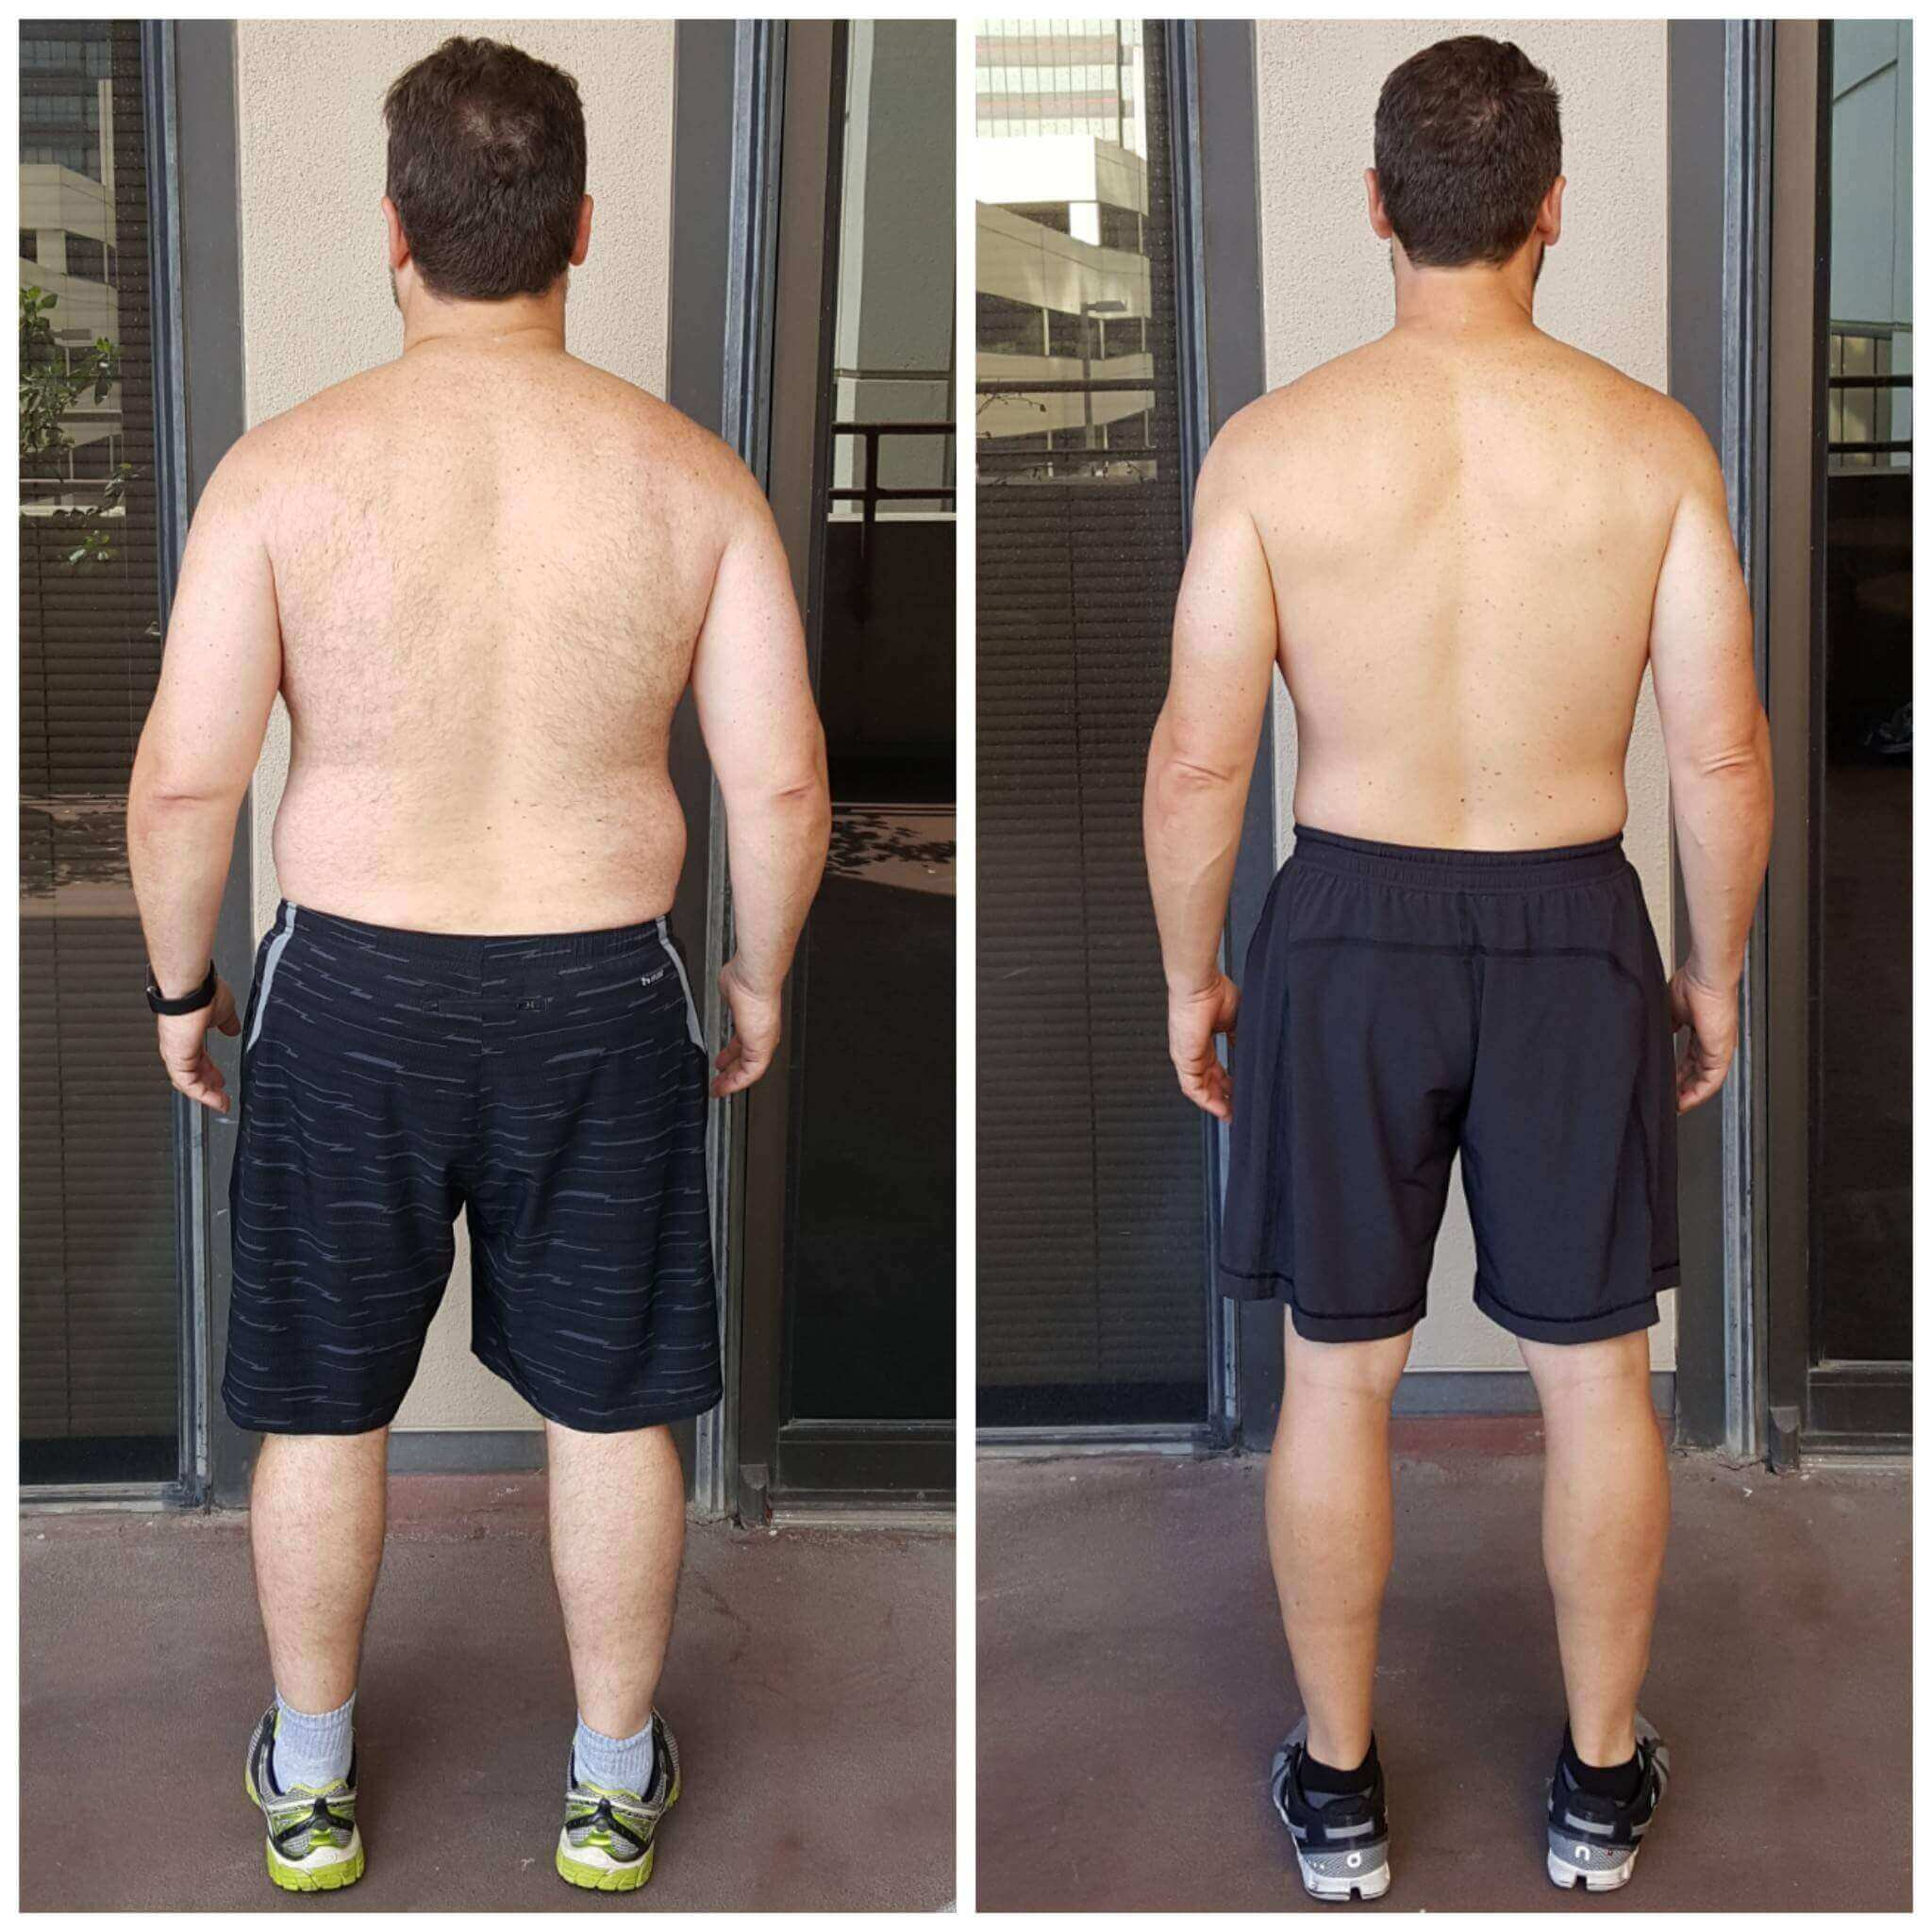 Brian weight loss Dallas top personal trainer